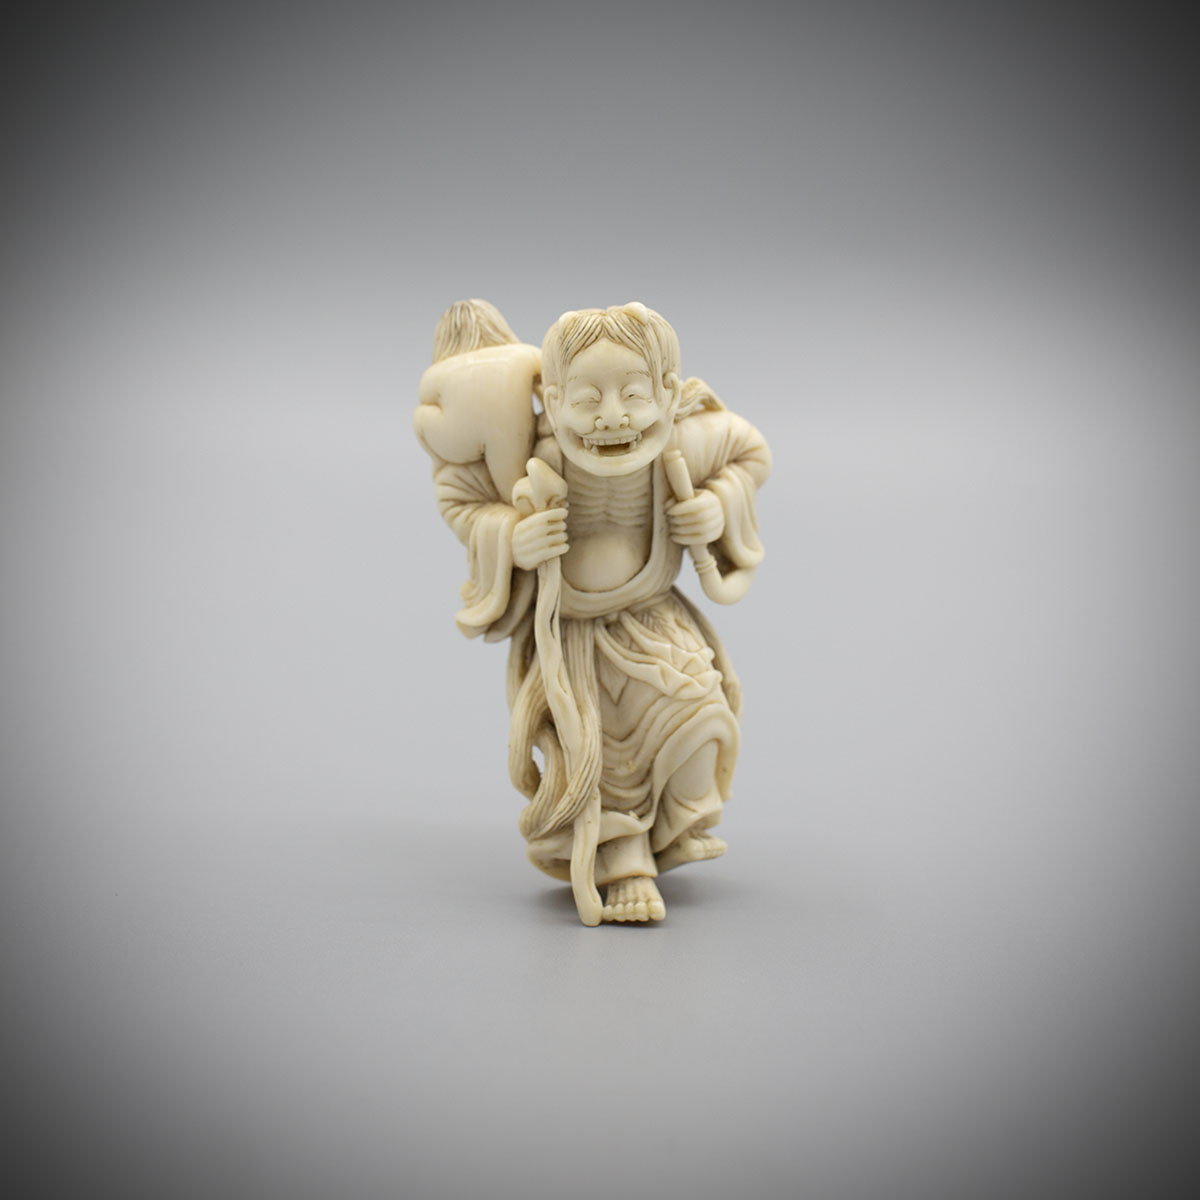 Ivory Netsuke of Yamanba, after Yamanba, MR3200_v1